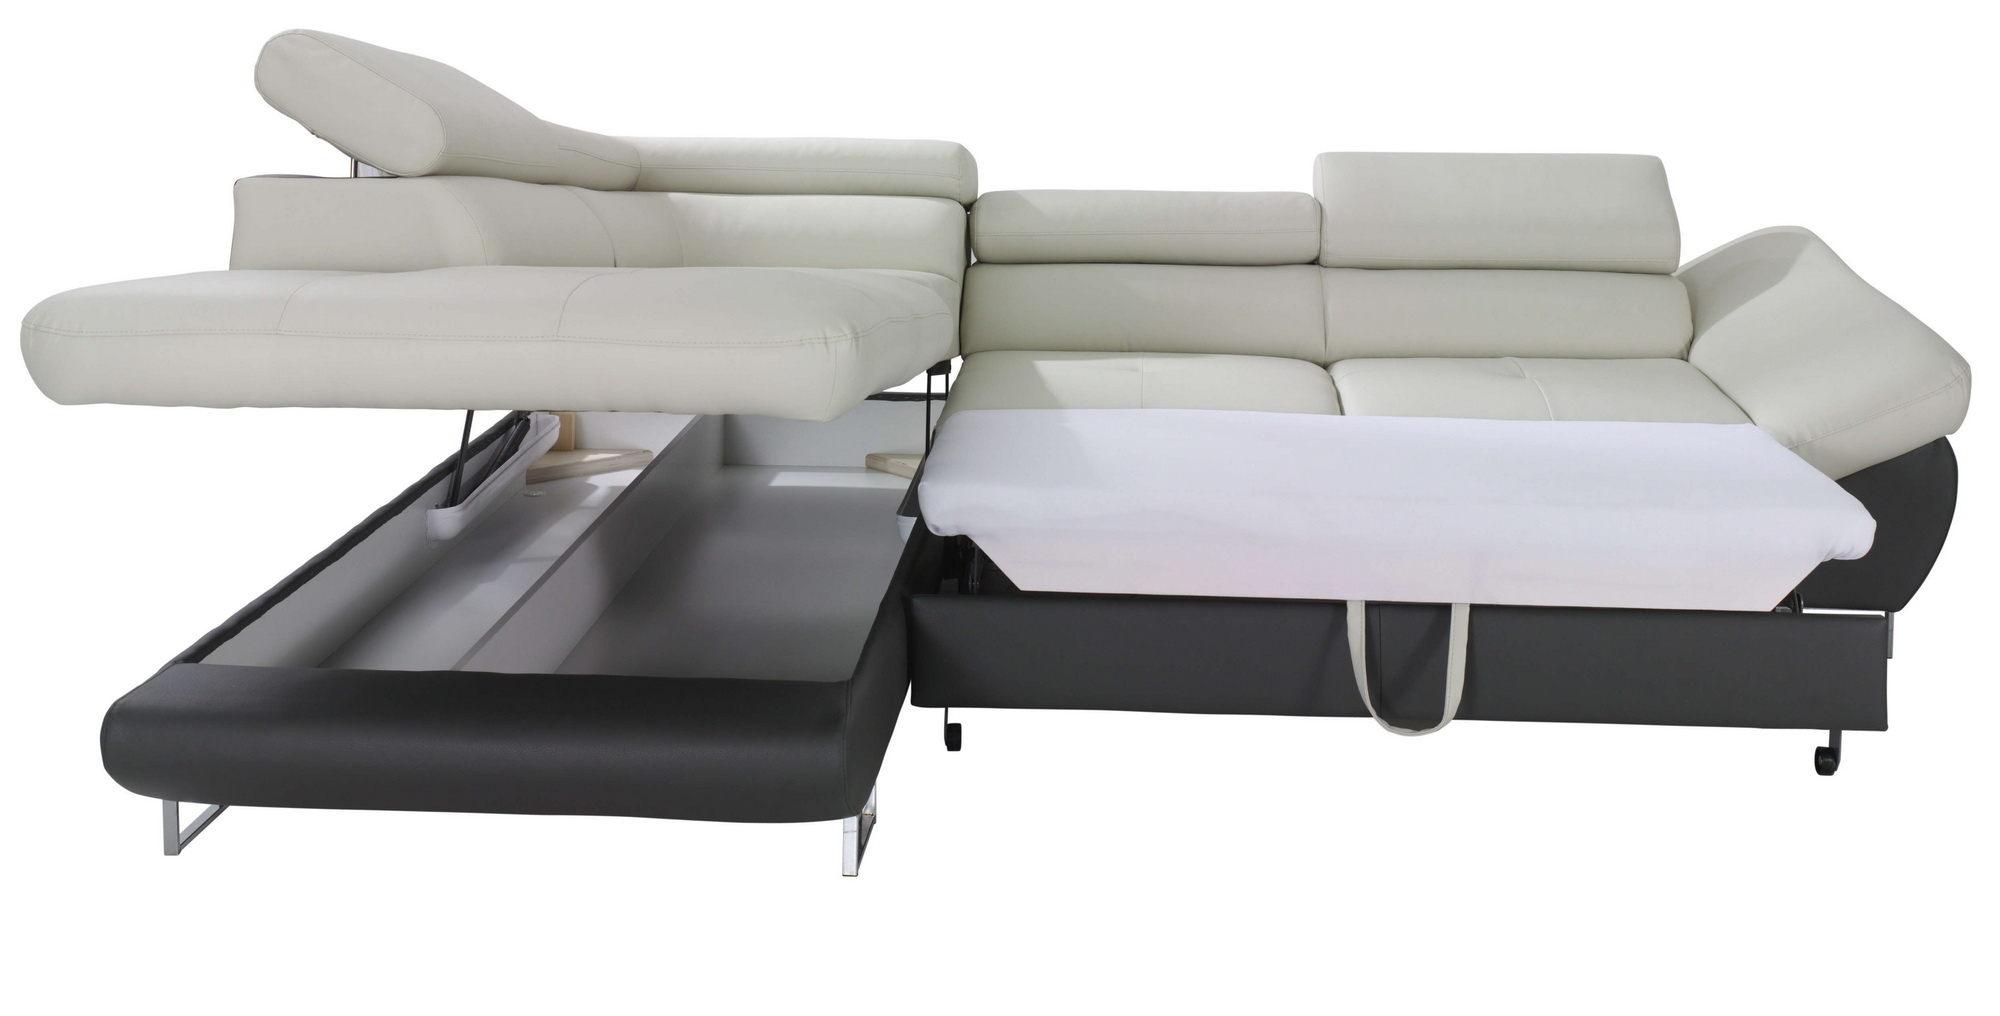 Featured Image of Sectional Sofas With Storage